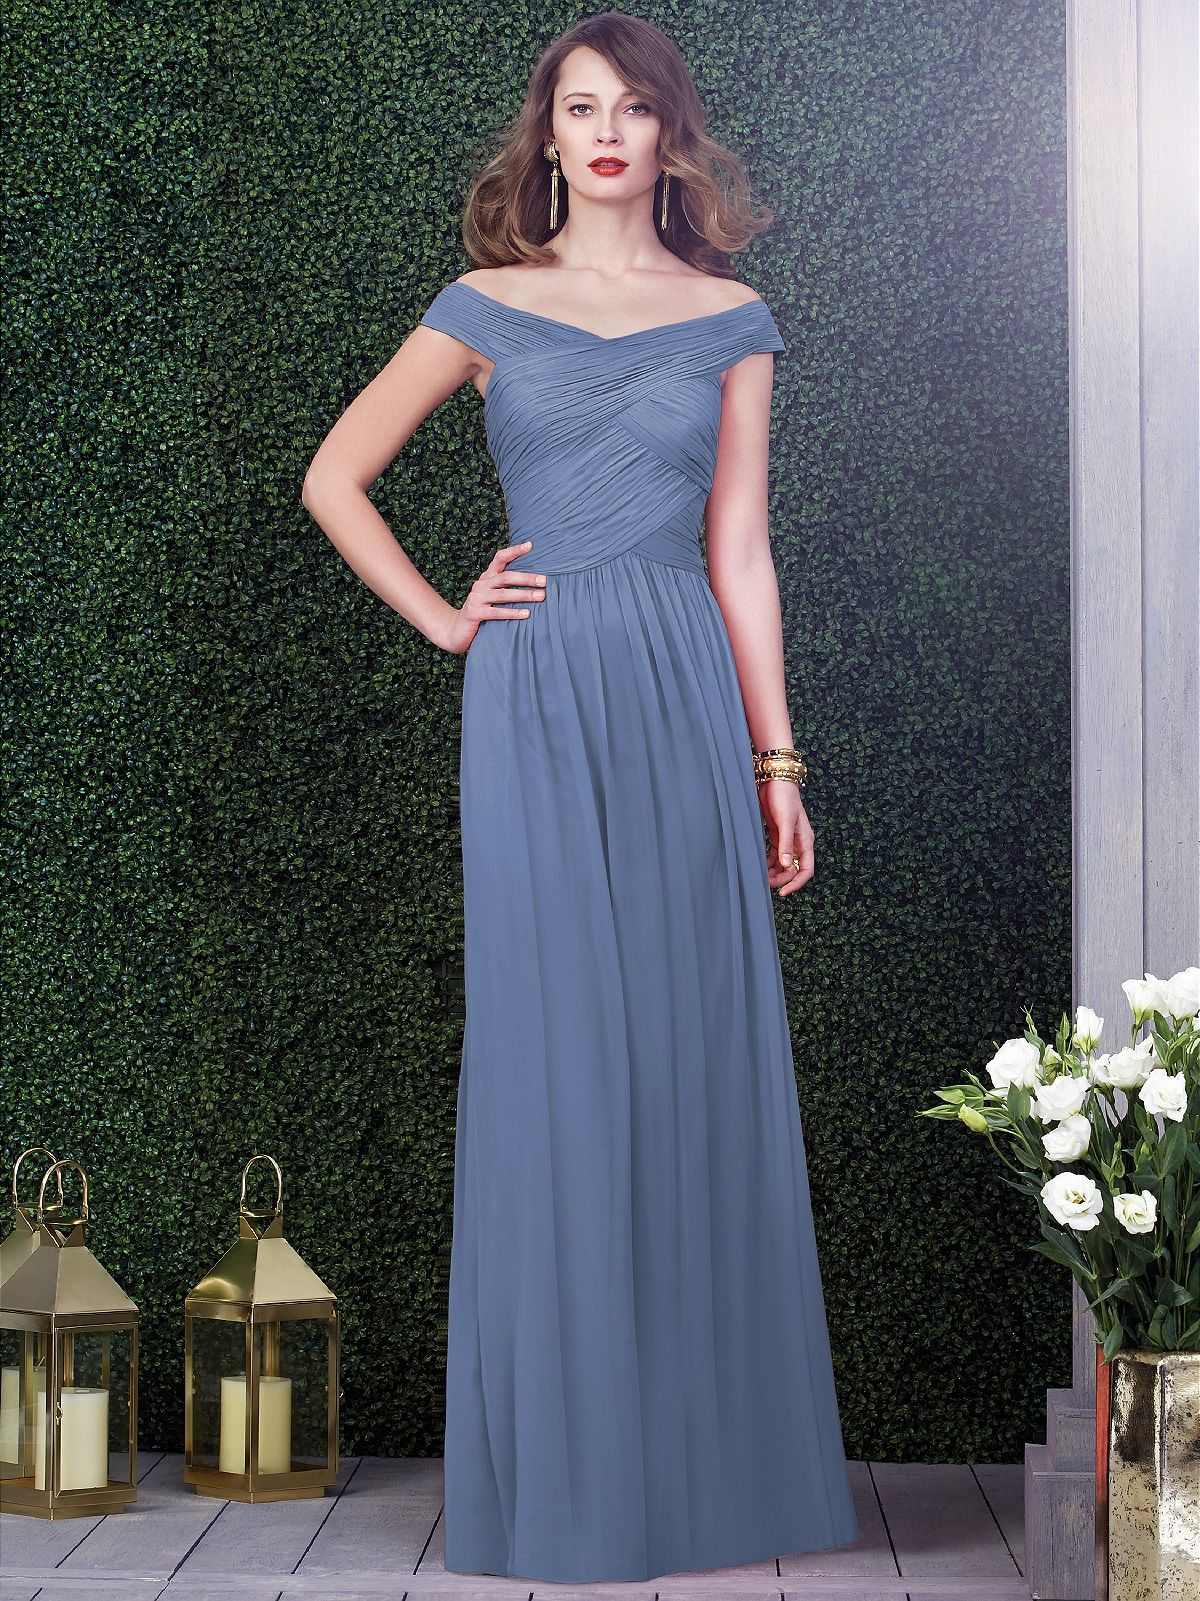 Dessy collection style 2919 wedding dessy collection style 2919 long bridesmaid dresseswedding ombrellifo Choice Image